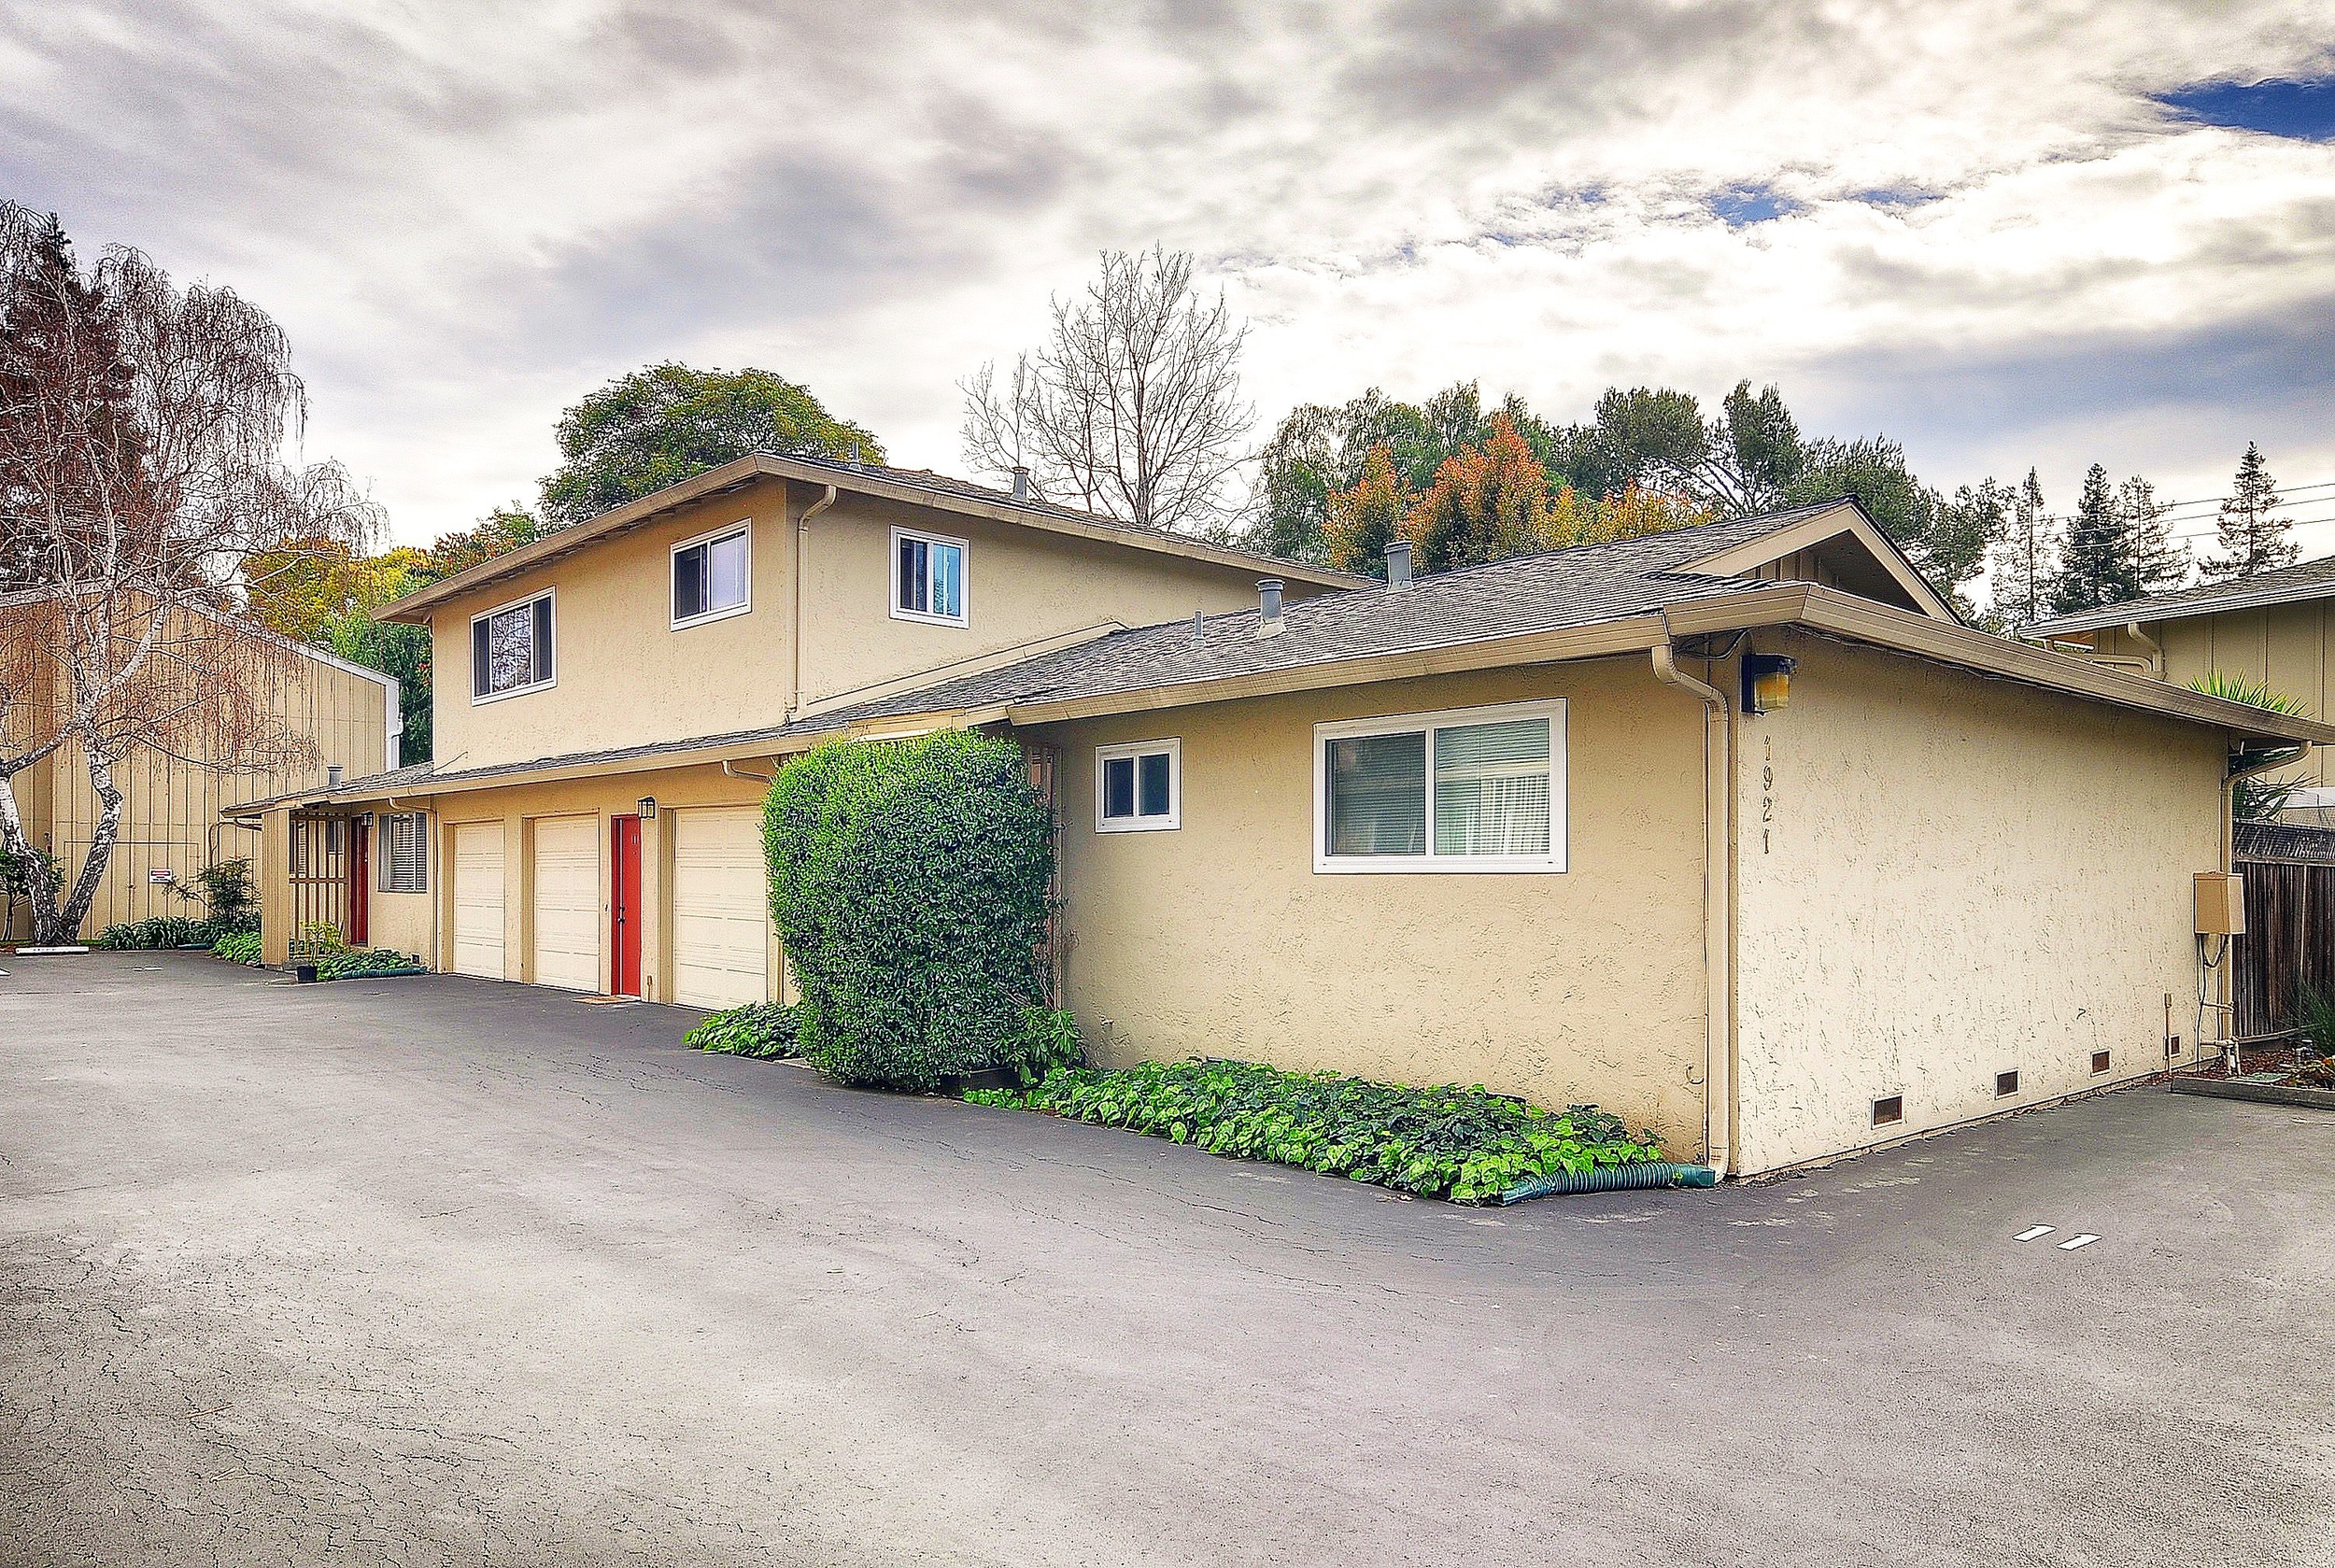 SOLD:  1921 Rock St #11, Mountain View  Beautiful, private townhouse  Offered at $615,000